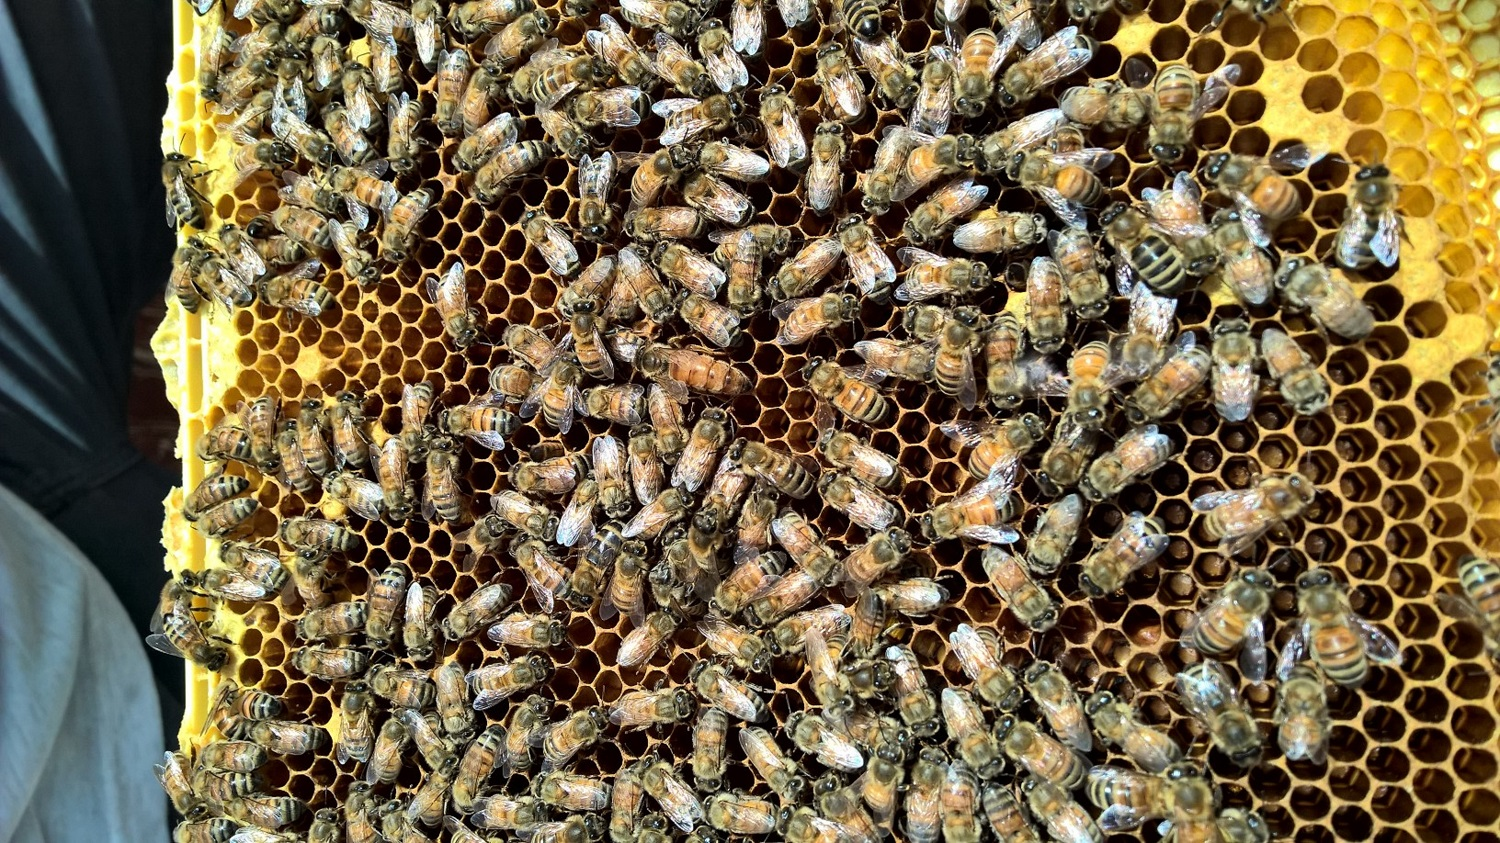 find the Queen